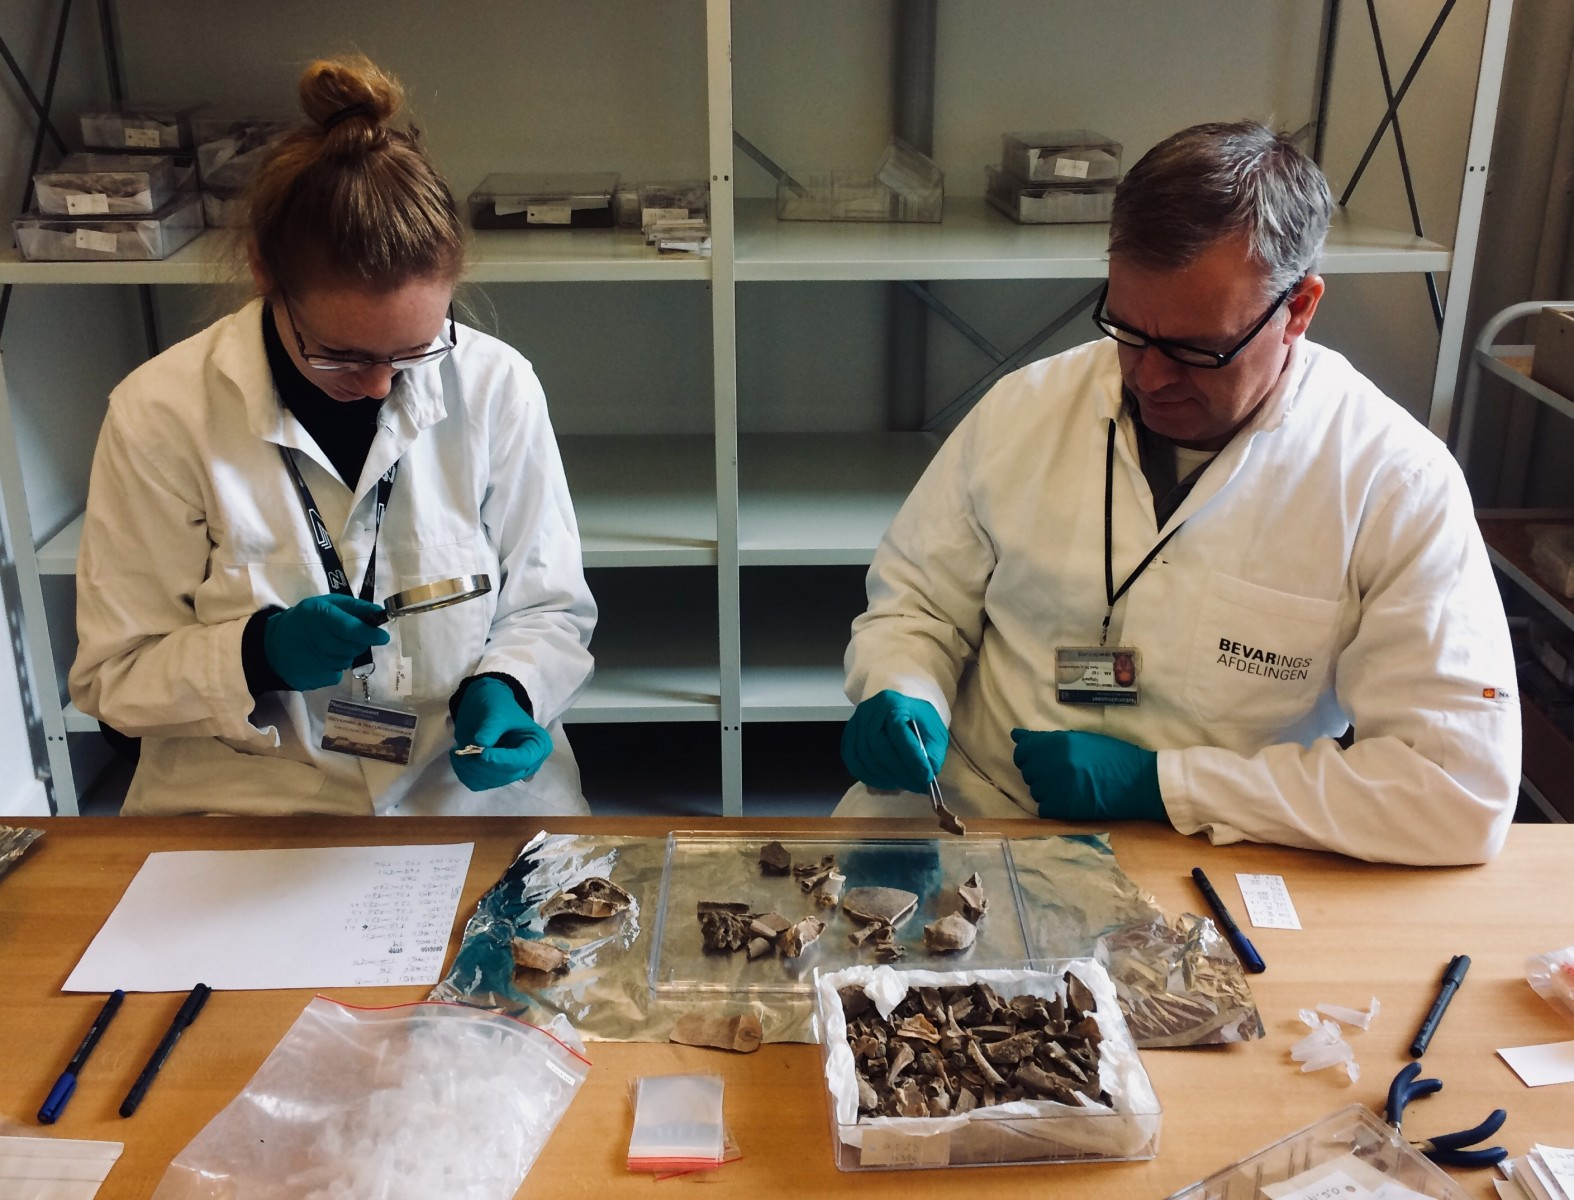 Virginia Harvey The University of Manchester and Casper Toftgaard The University of Copenhagen at The National Museum of Denmark selecting turtle bone samples excavated from the US Virgin Islands for collagen analysis